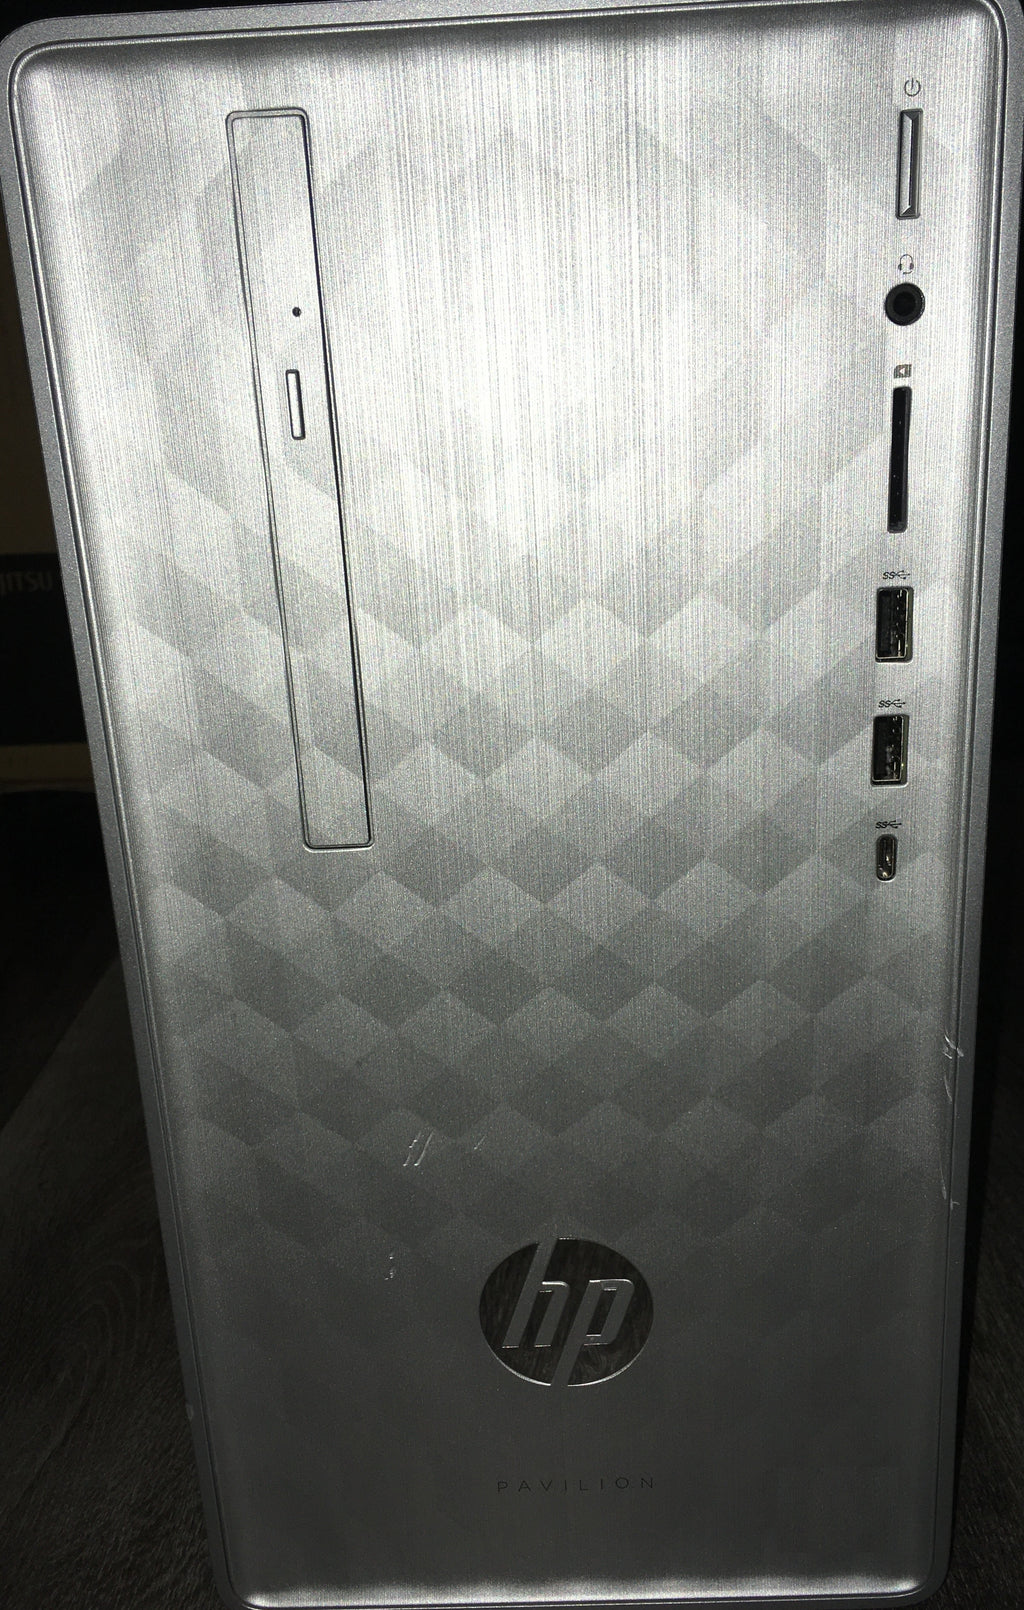 HP Pavilion Desktop (Refurbished) for home and office/work at home spare computer